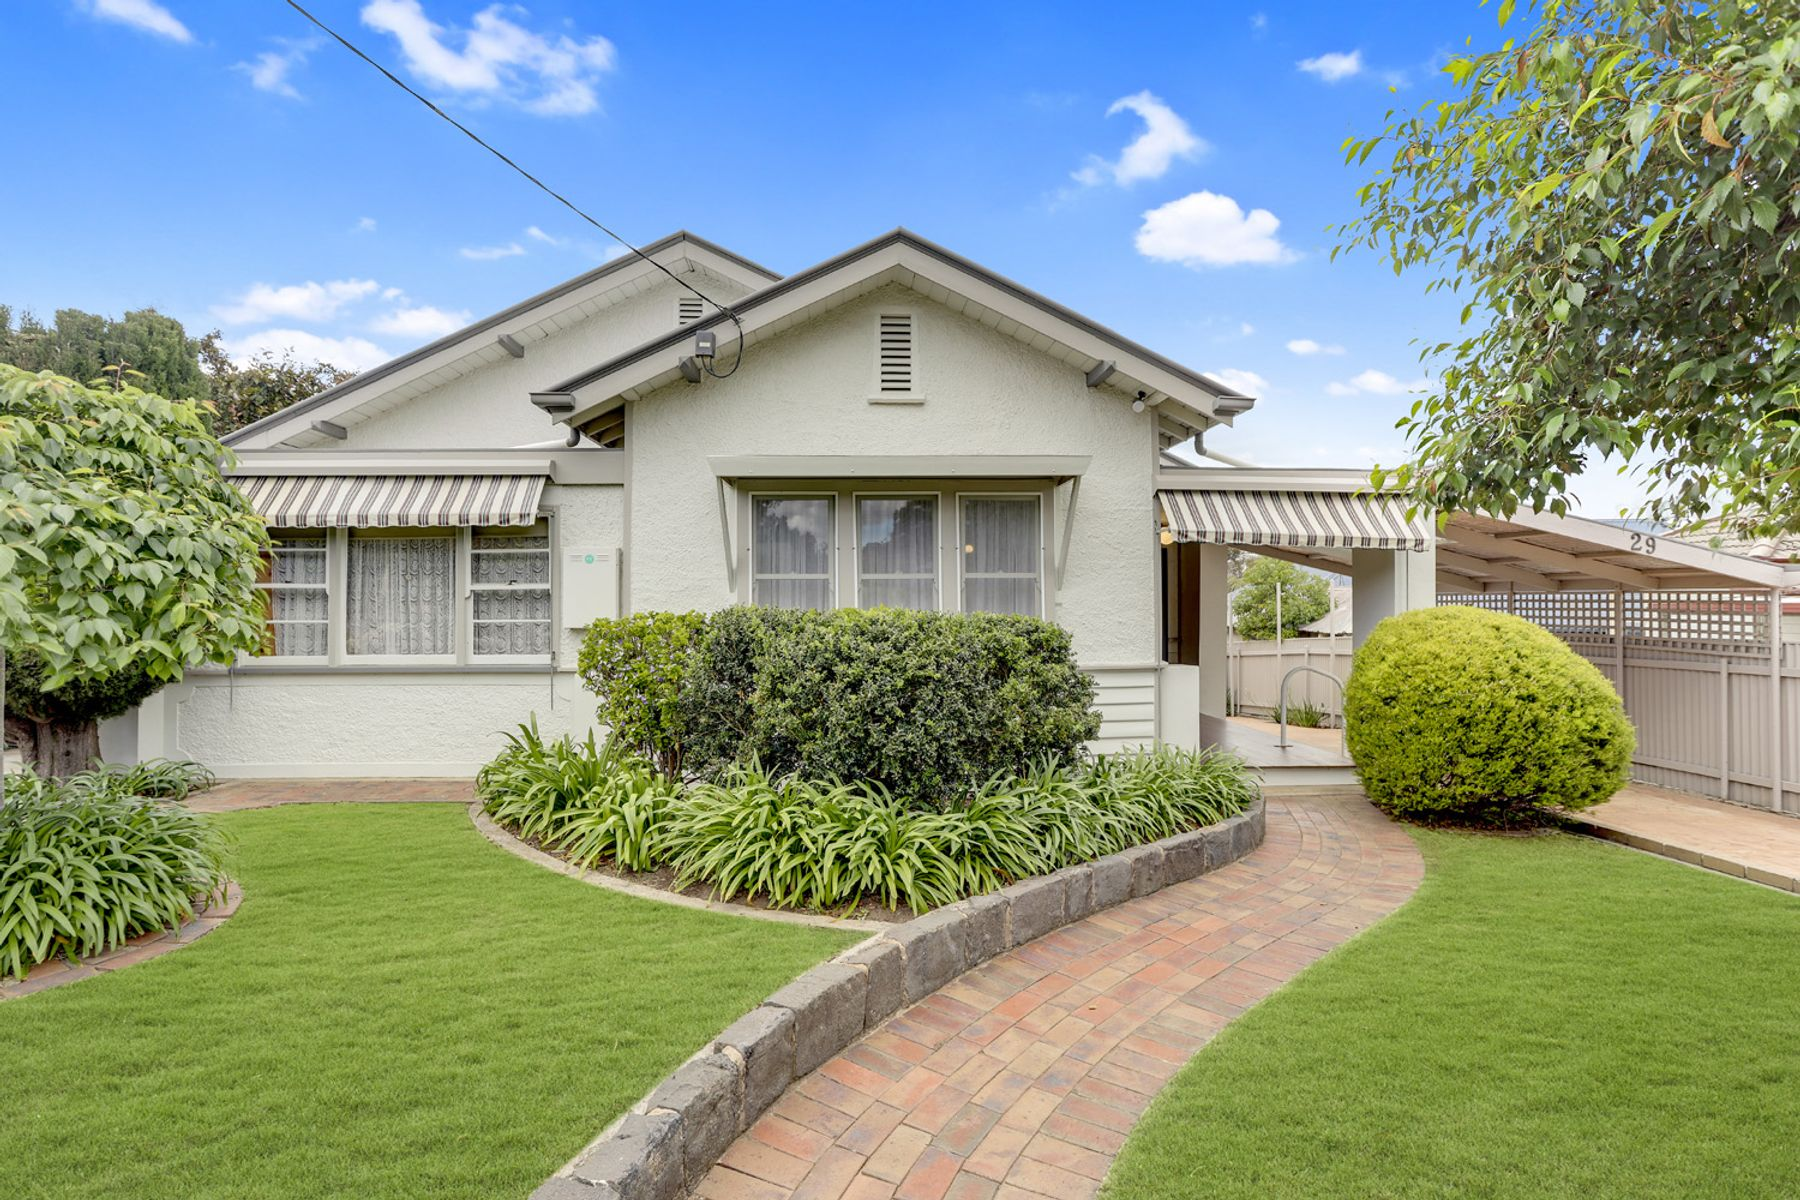 29 Reginald Street, Quarry Hill, VIC 3550